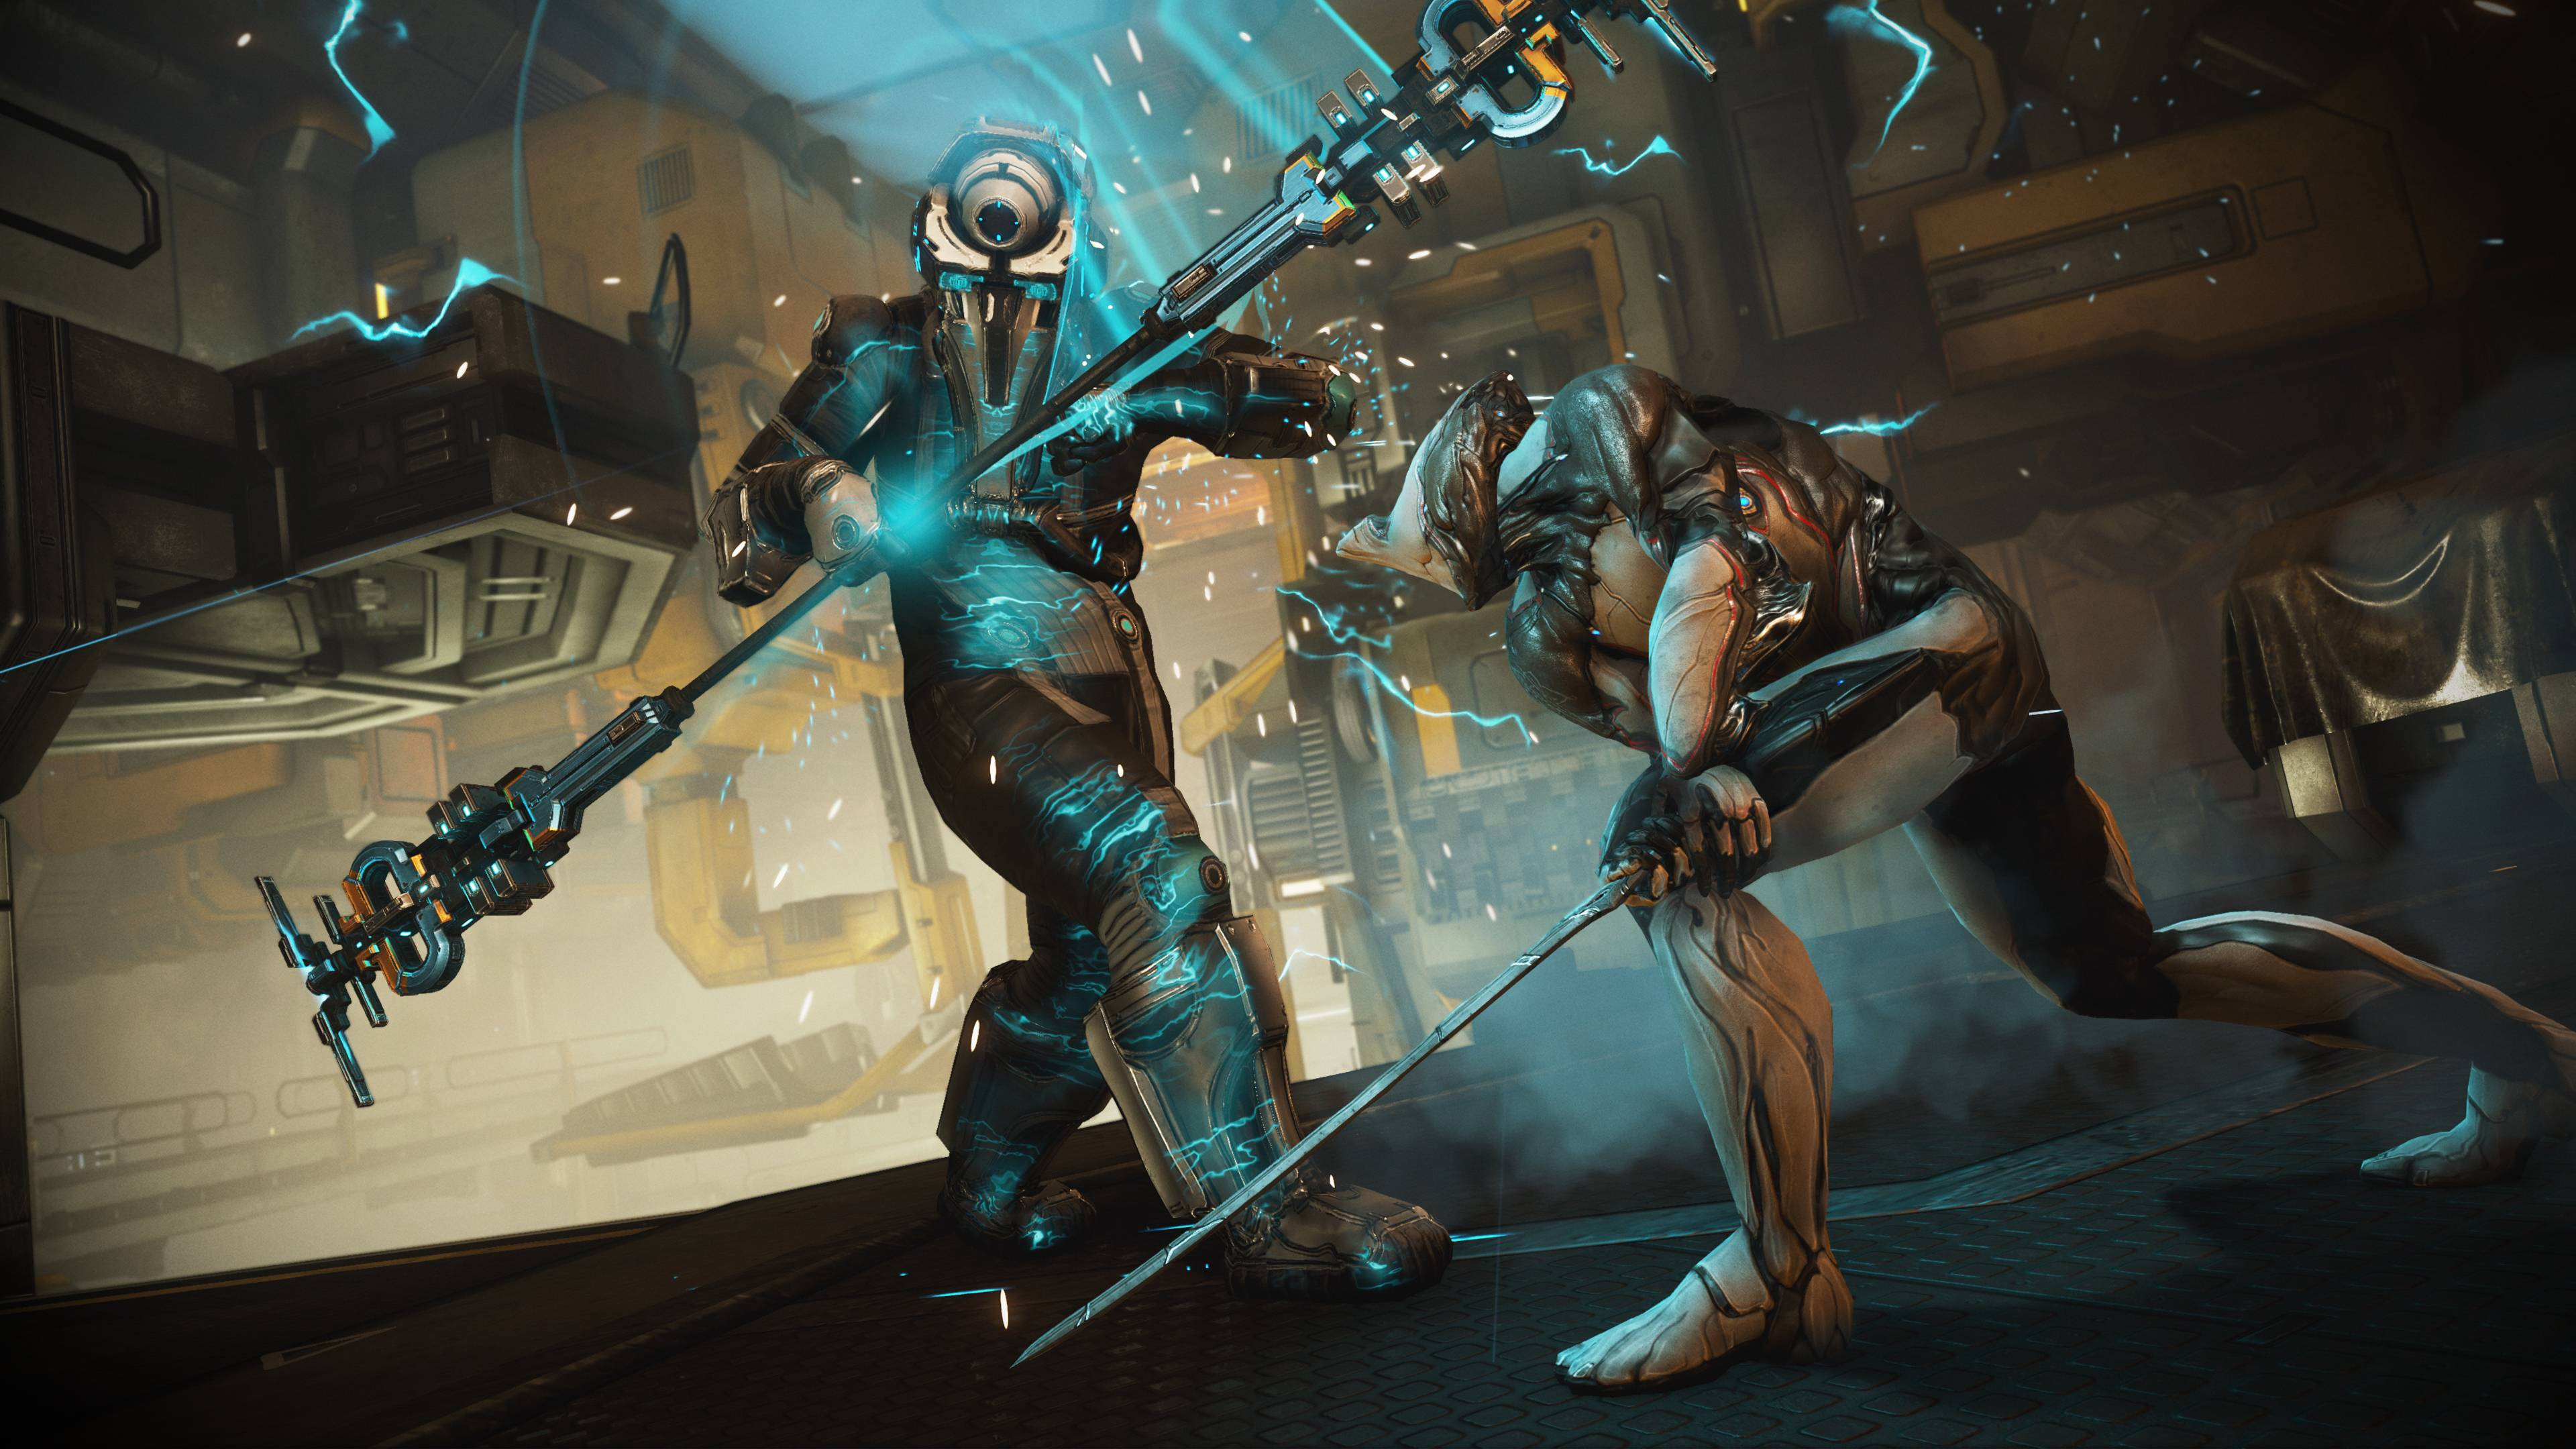 Warframe - the Excalibur Warframe attacks a Corpus crewmate with his sword aboard a spaceship.